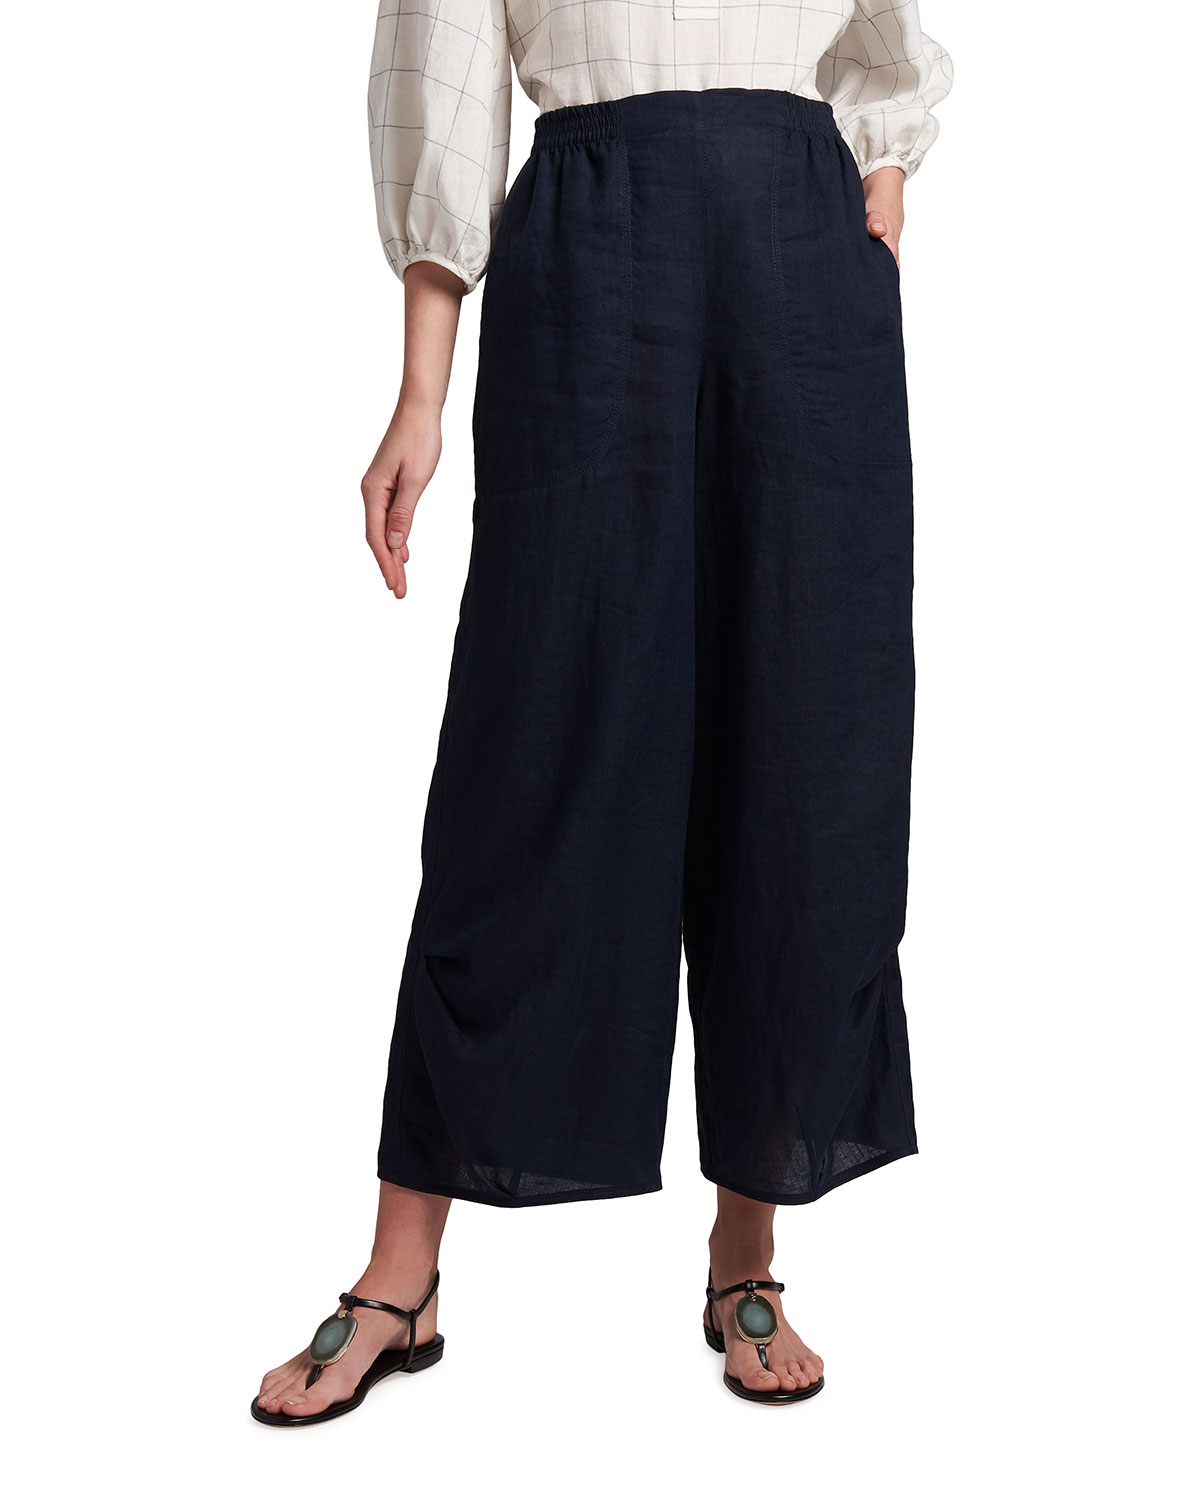 Giorgio Armani WASHED LINEN PULL-ON TROUSERS